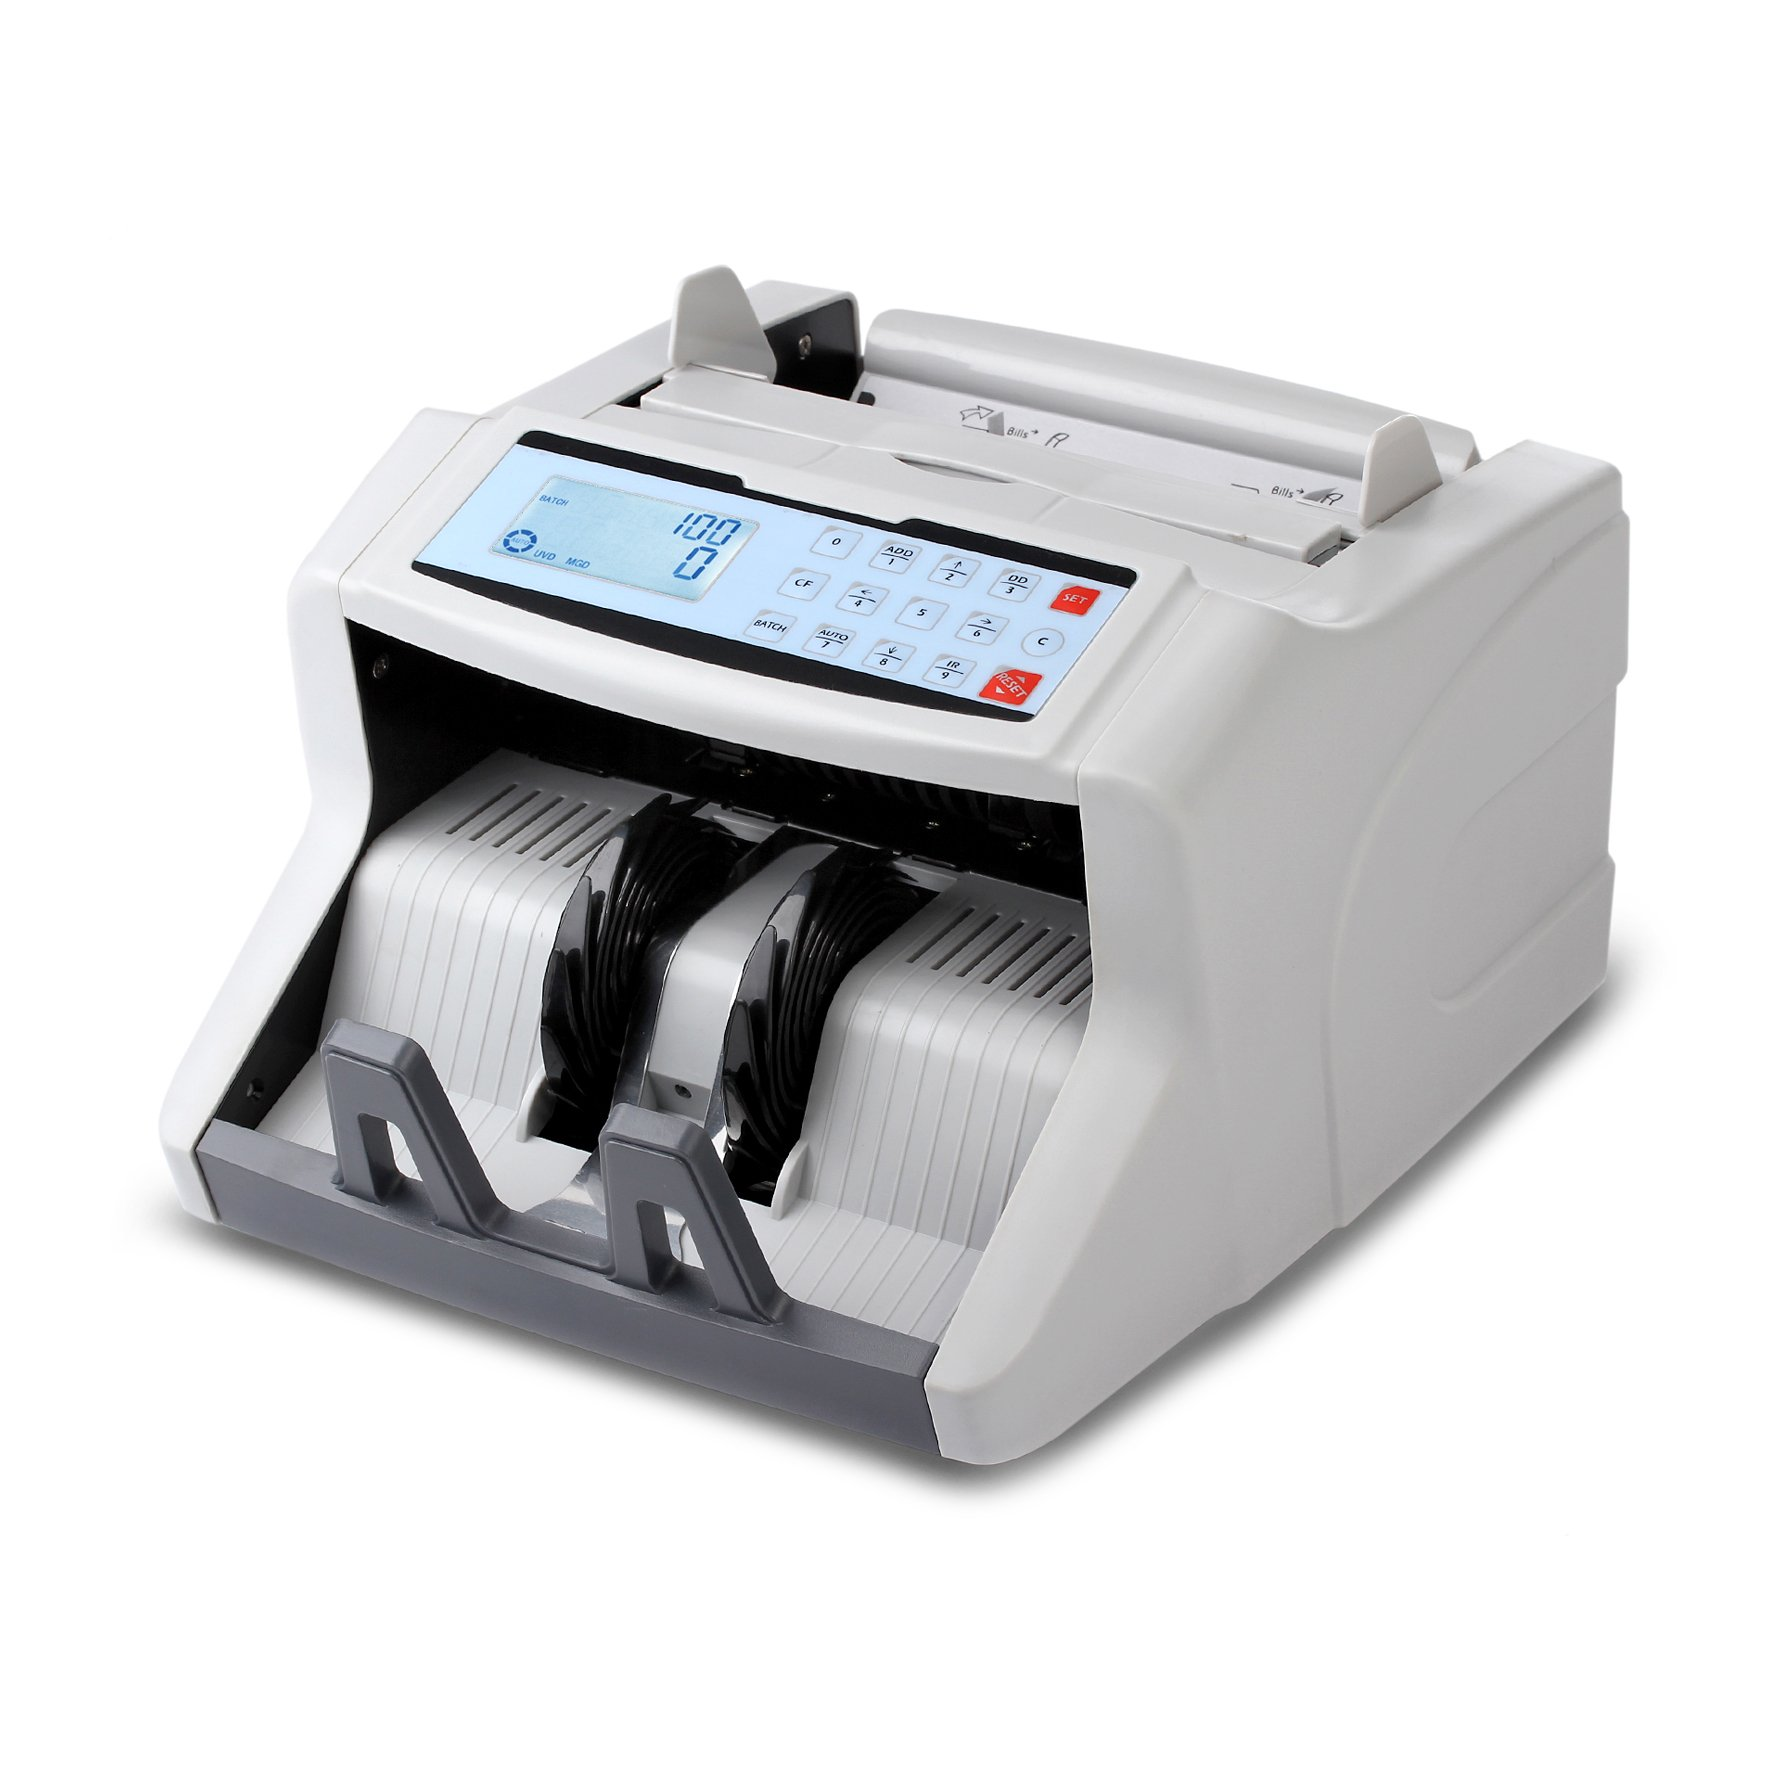 Upgraded Pyle Bill Counter Machine - Cash, Automatic Counting, Toploader, UV & MG Counterfeit Detection, UV Scanning, LCD Display, 1500 Pieces Per Min, U.S. & Canadian Dollar, Euros & Pound - PRMC500 by Pyle